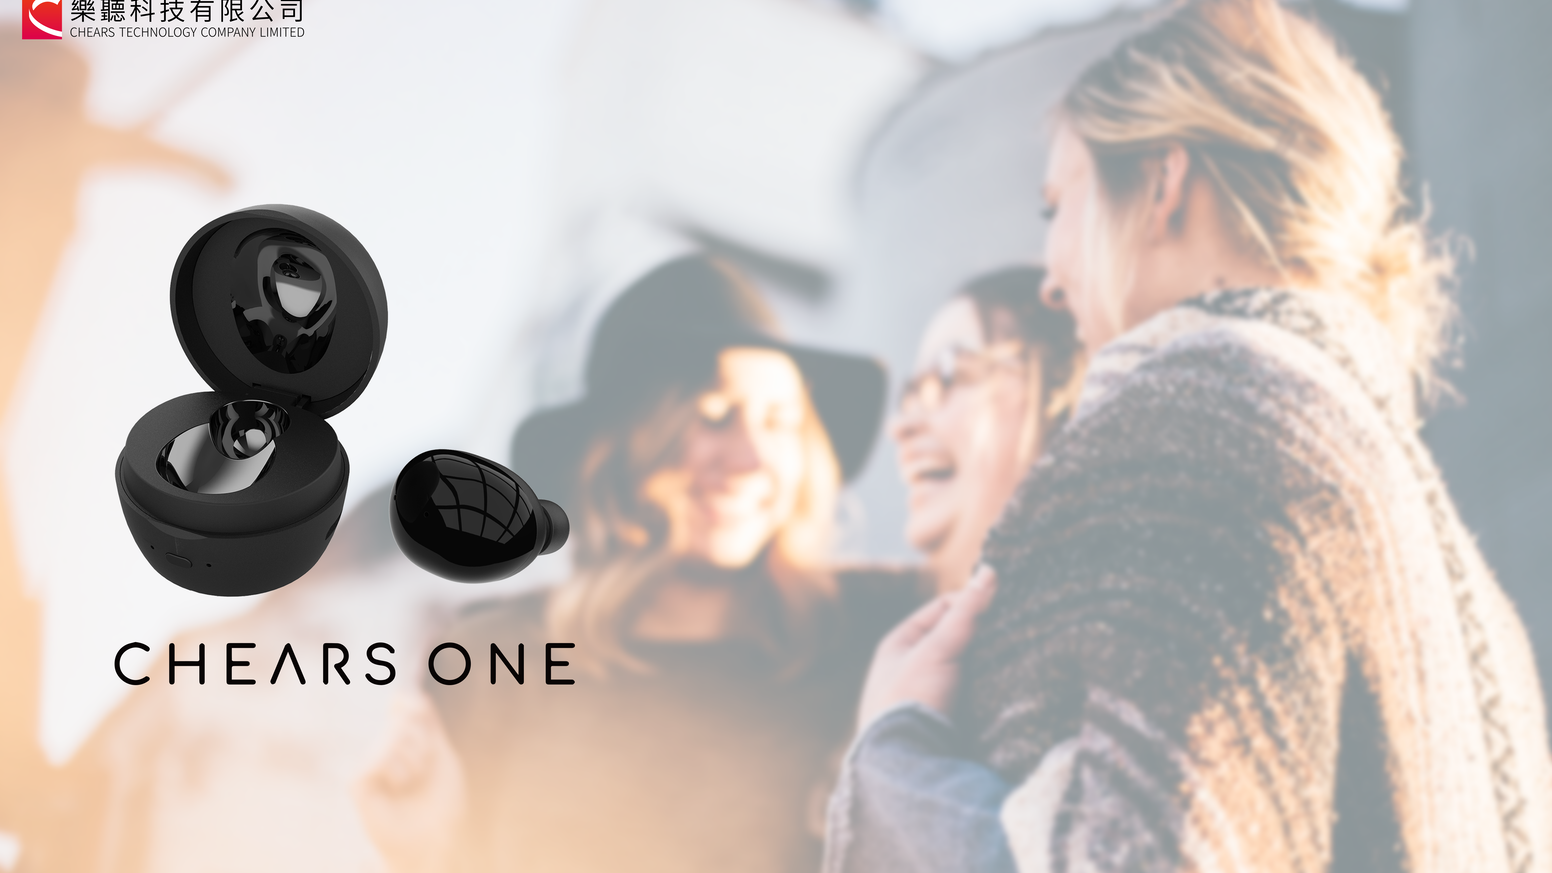 A smart hearing earbuds give you an affordable, comfortable and fashionable hearing aid experience with your smartphone.